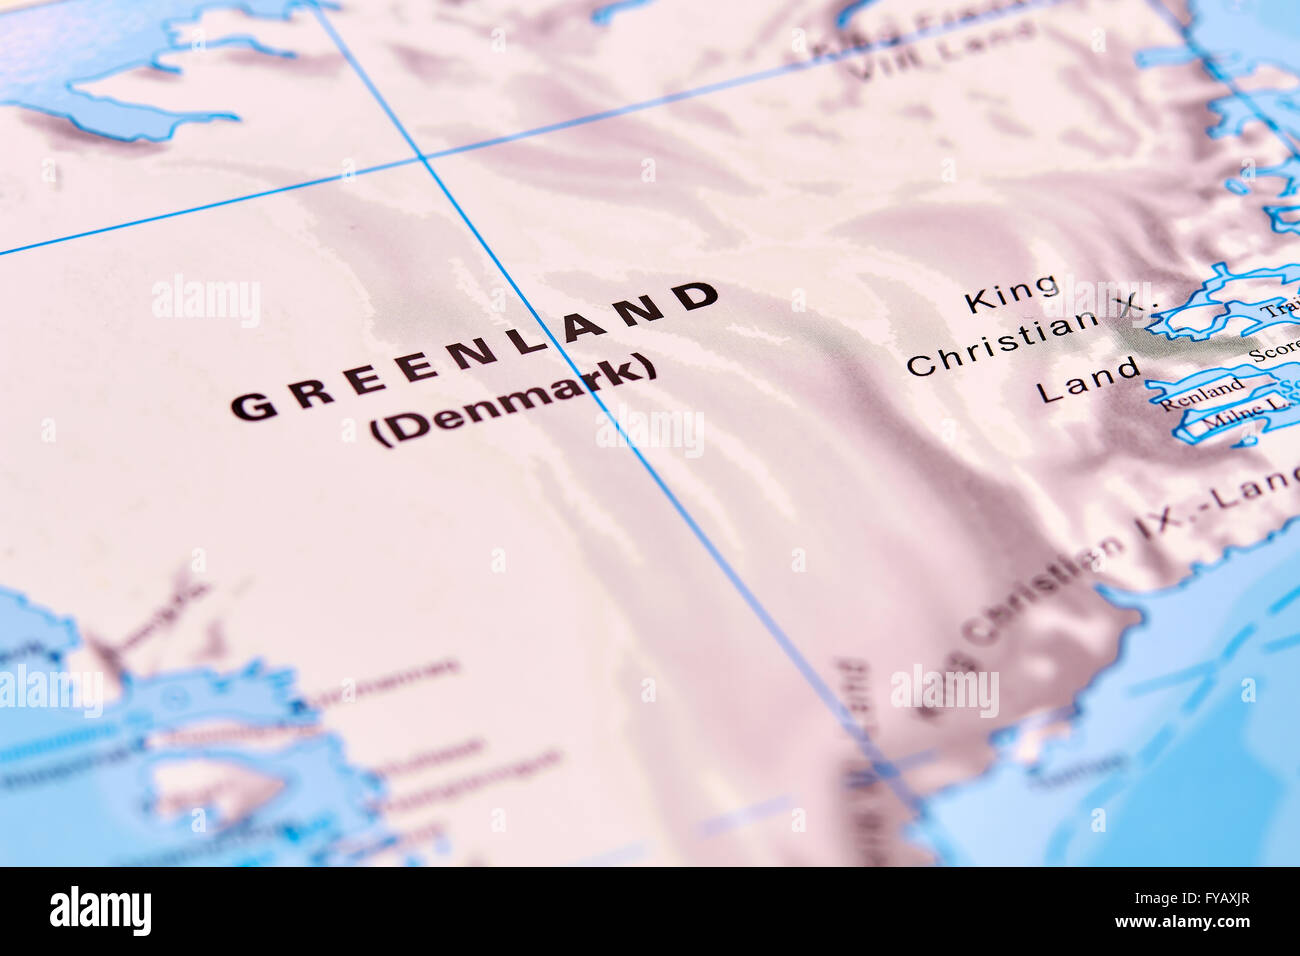 Greenland map stock photos greenland map stock images alamy greenland country in north america on the world map stock image gumiabroncs Image collections